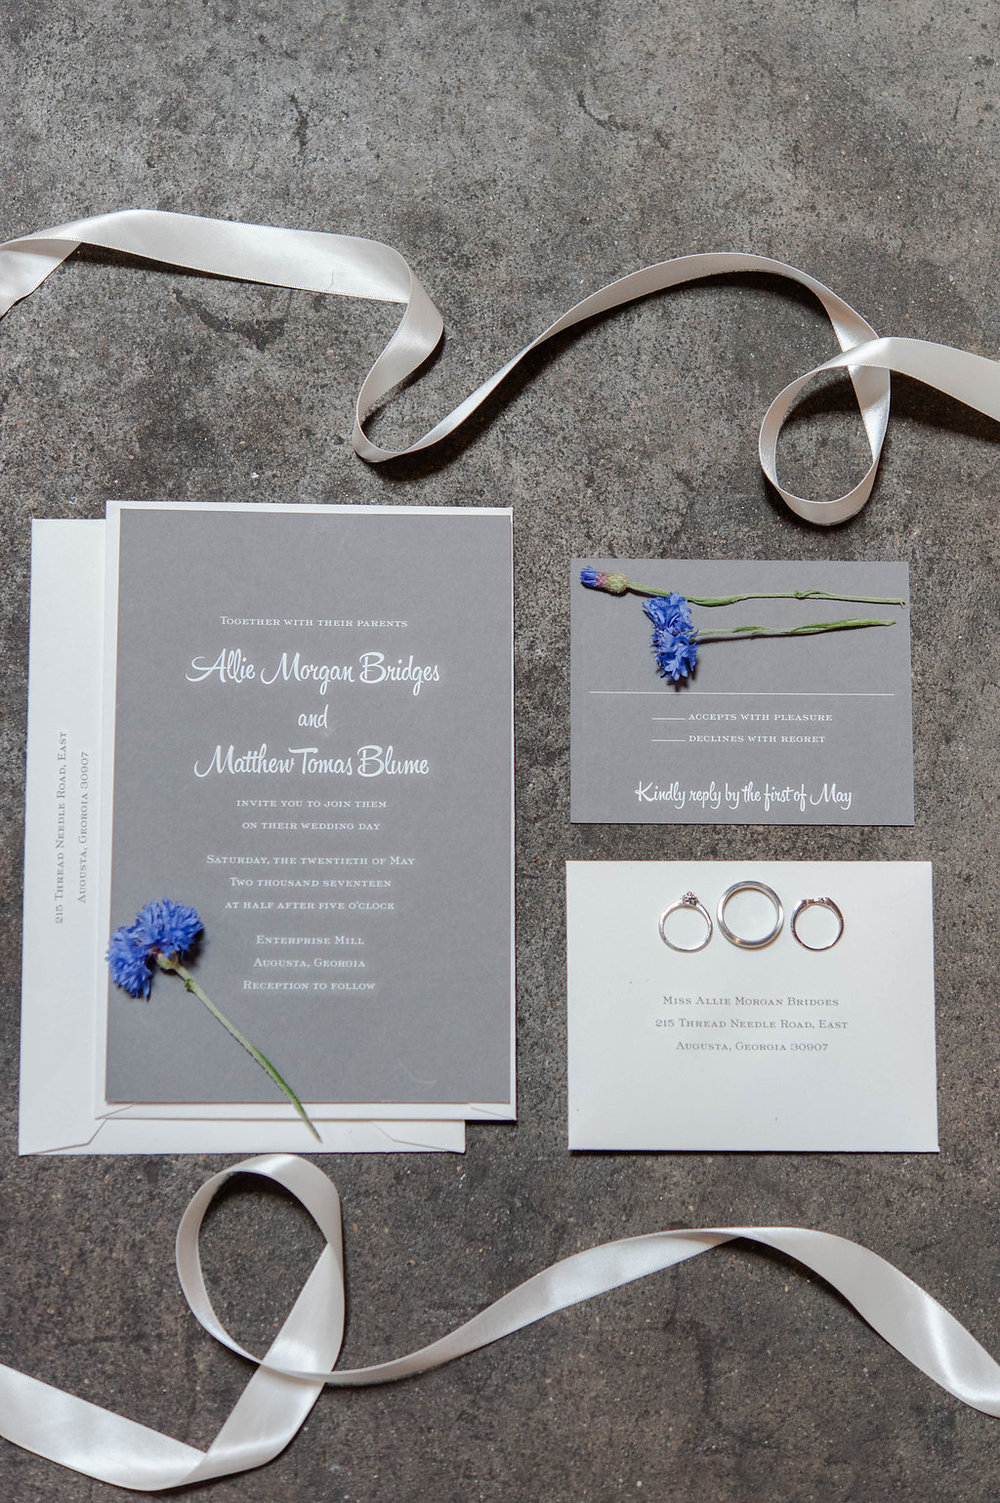 Augusta GA wedding invitations